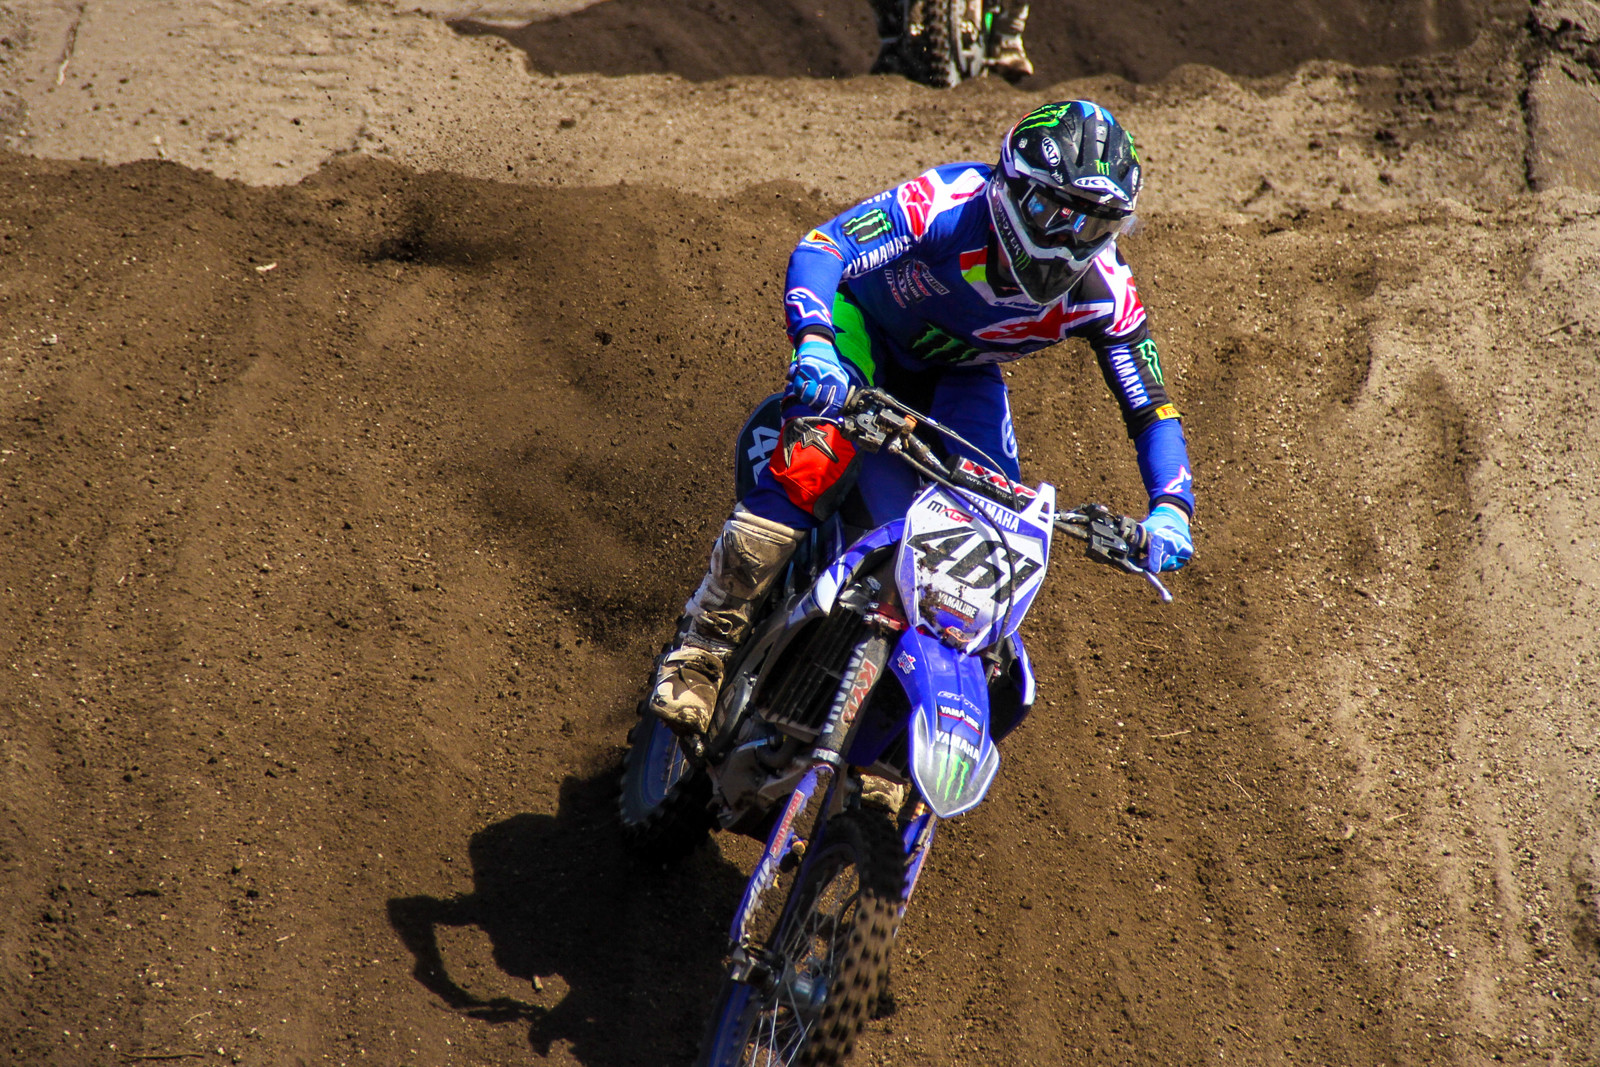 Prior MXGP champ Romain Febvre left Argentina with some solid points and a better start to the season, placing four-five for fifth overall.